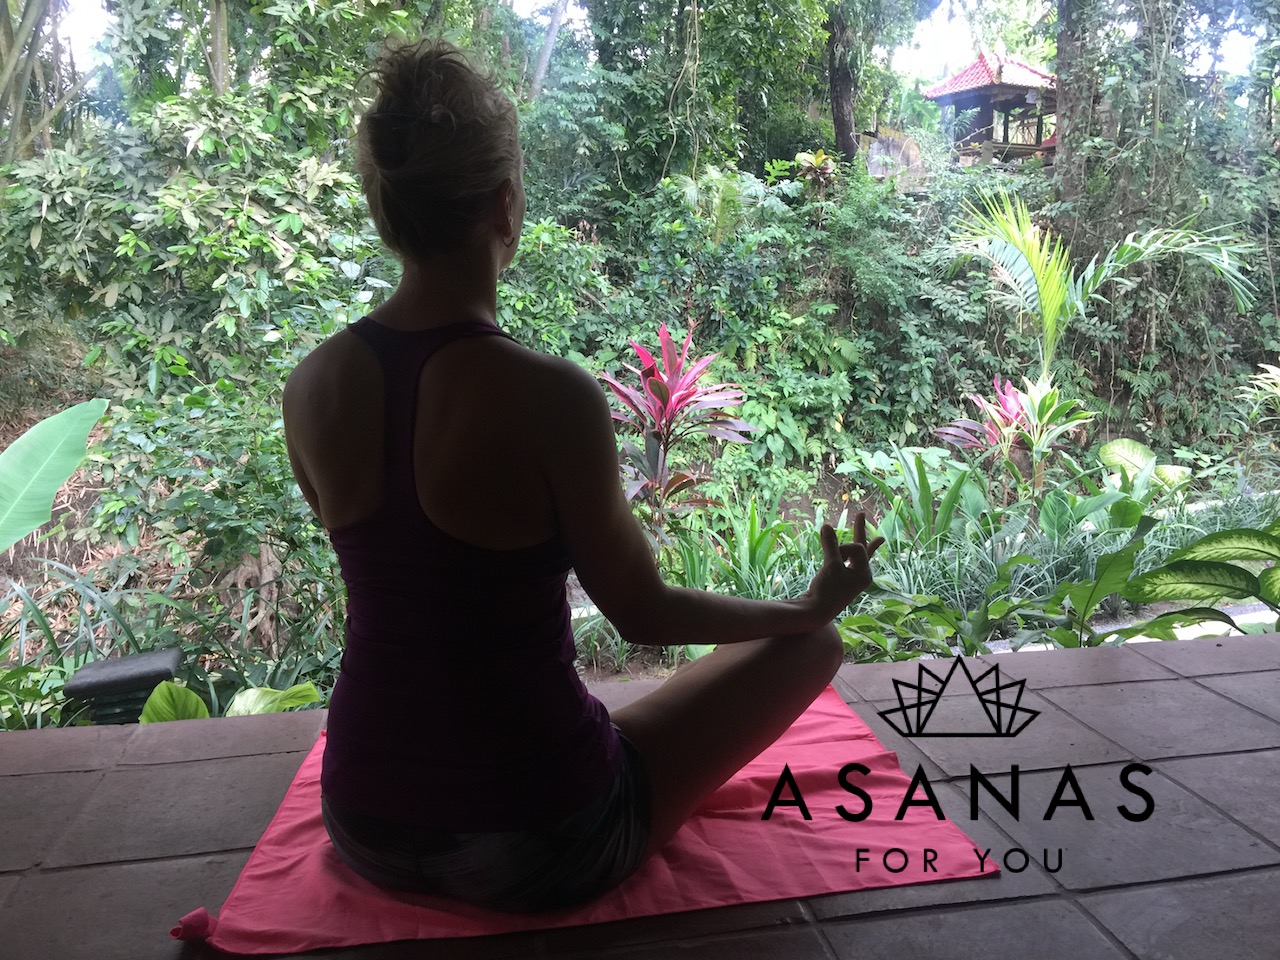 asanas-for-you-our-lotus-story.jpg